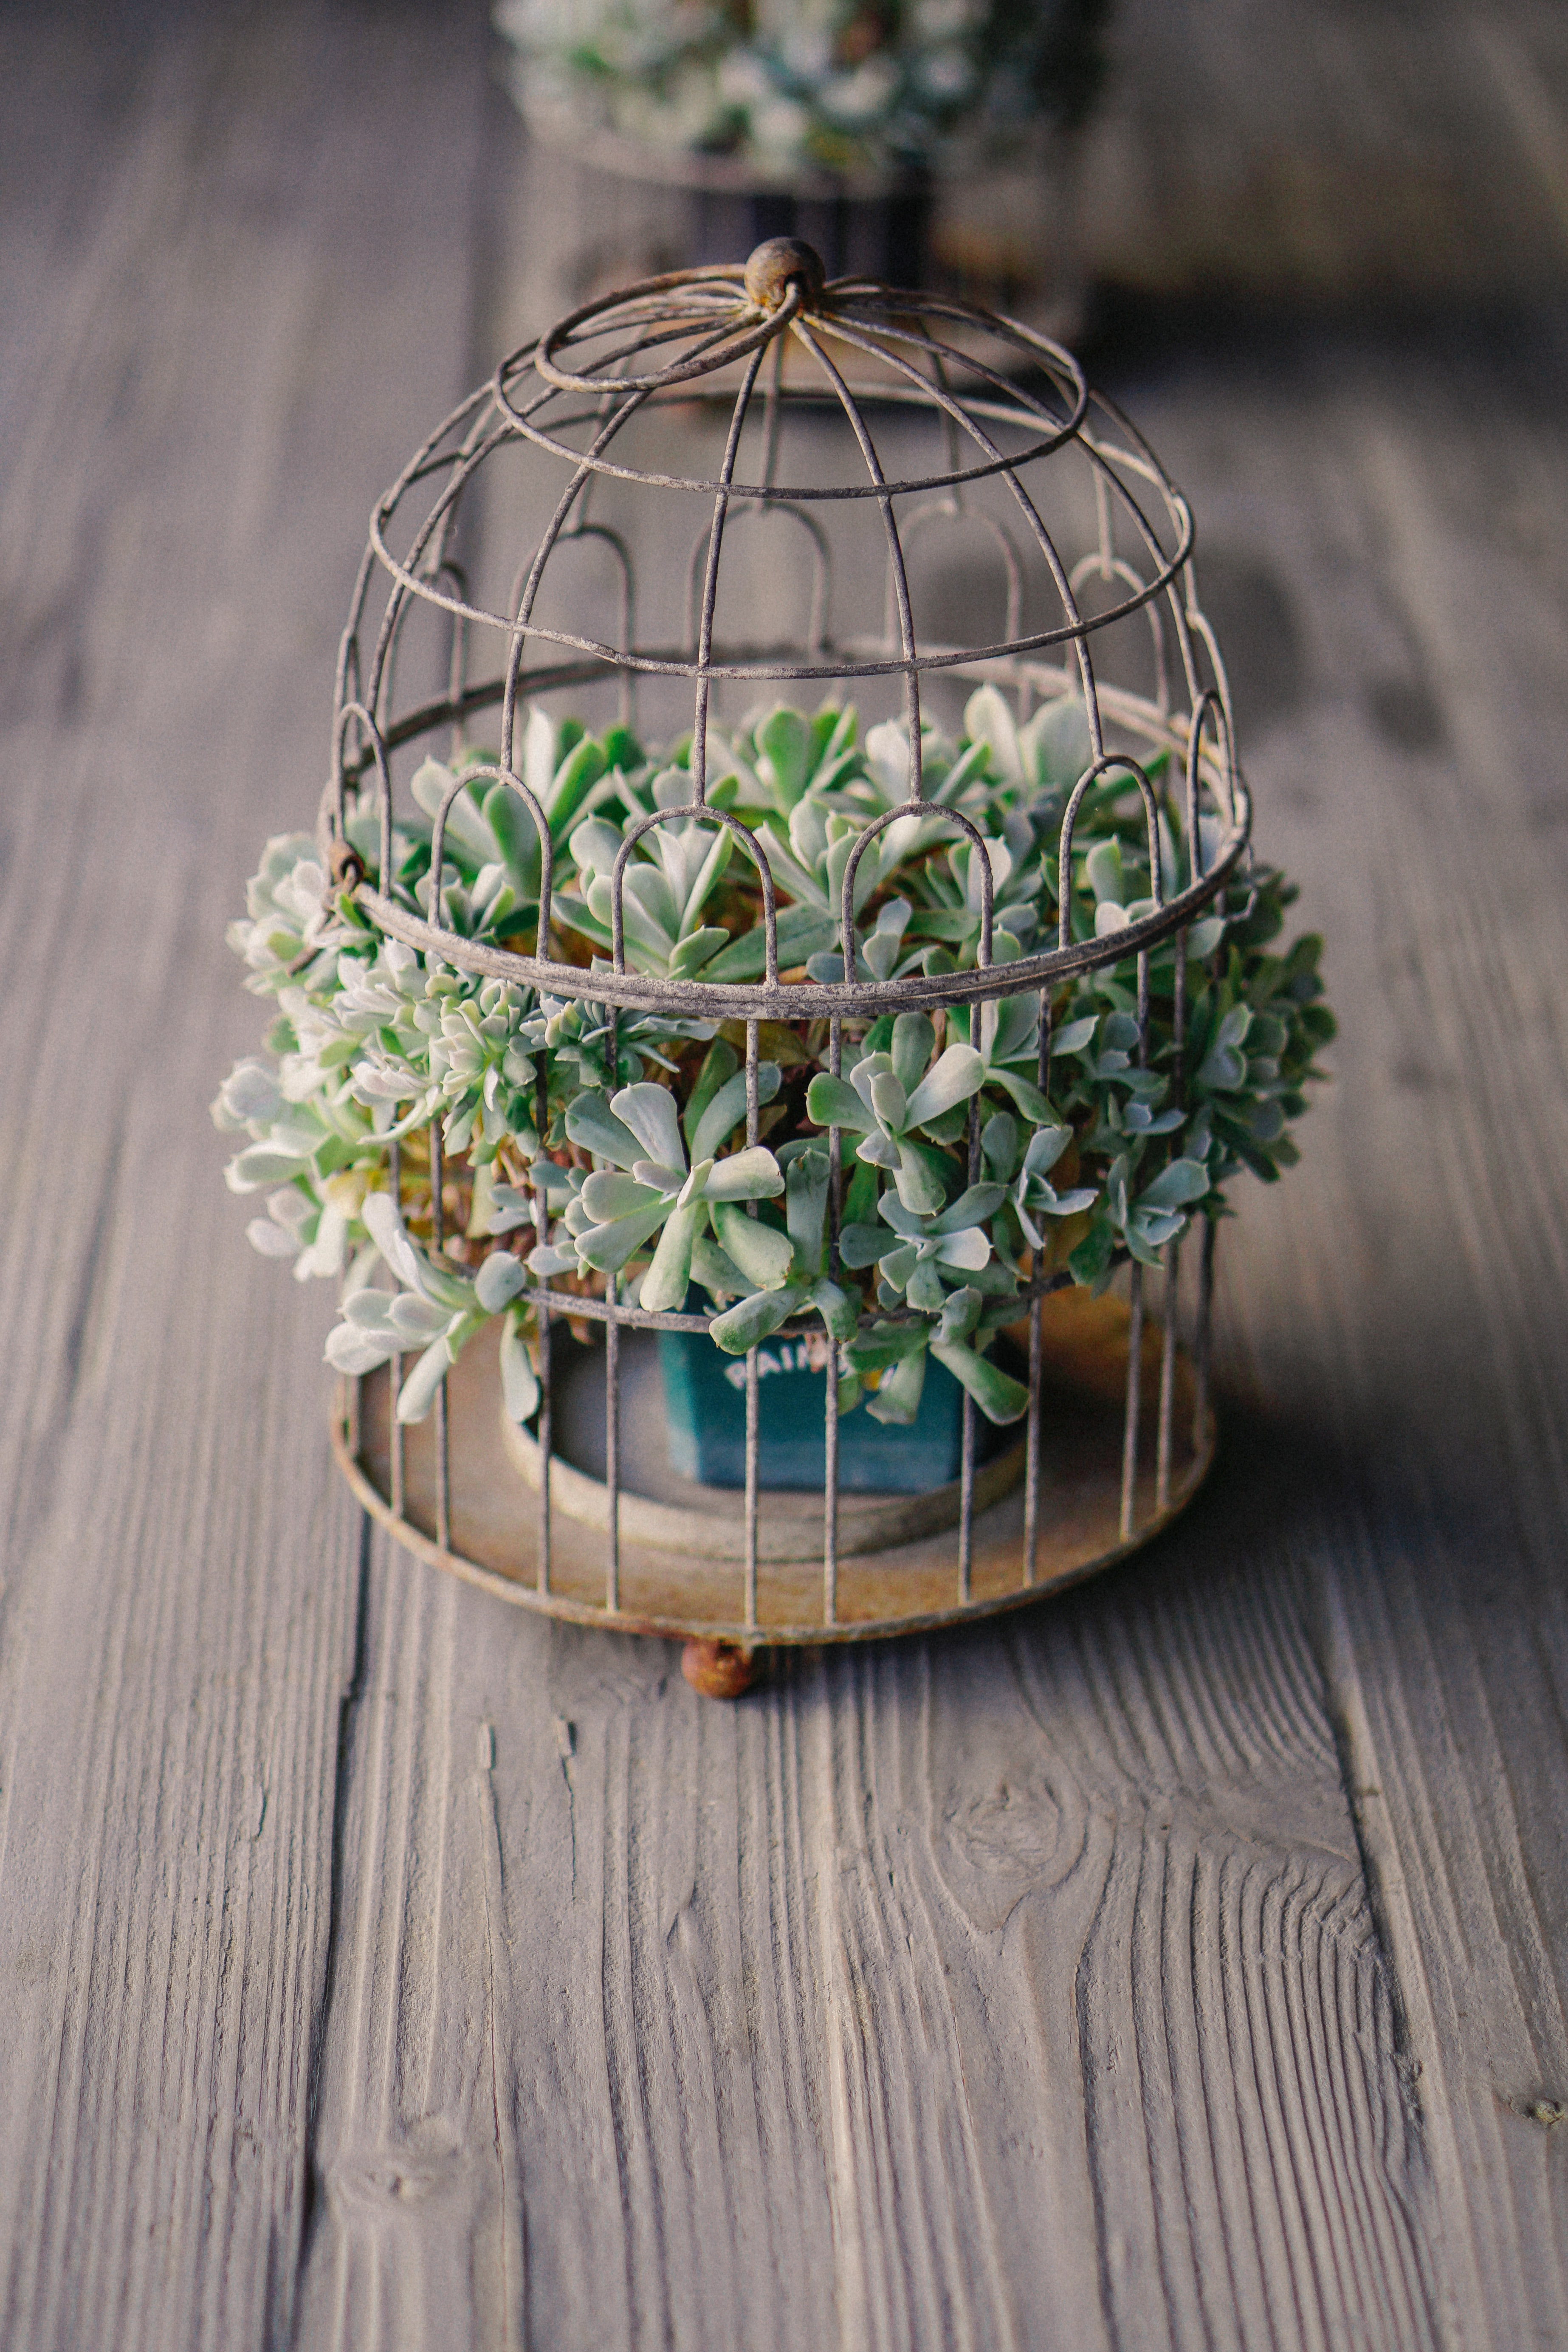 A succulent in a flowerpot inside a rusty cage